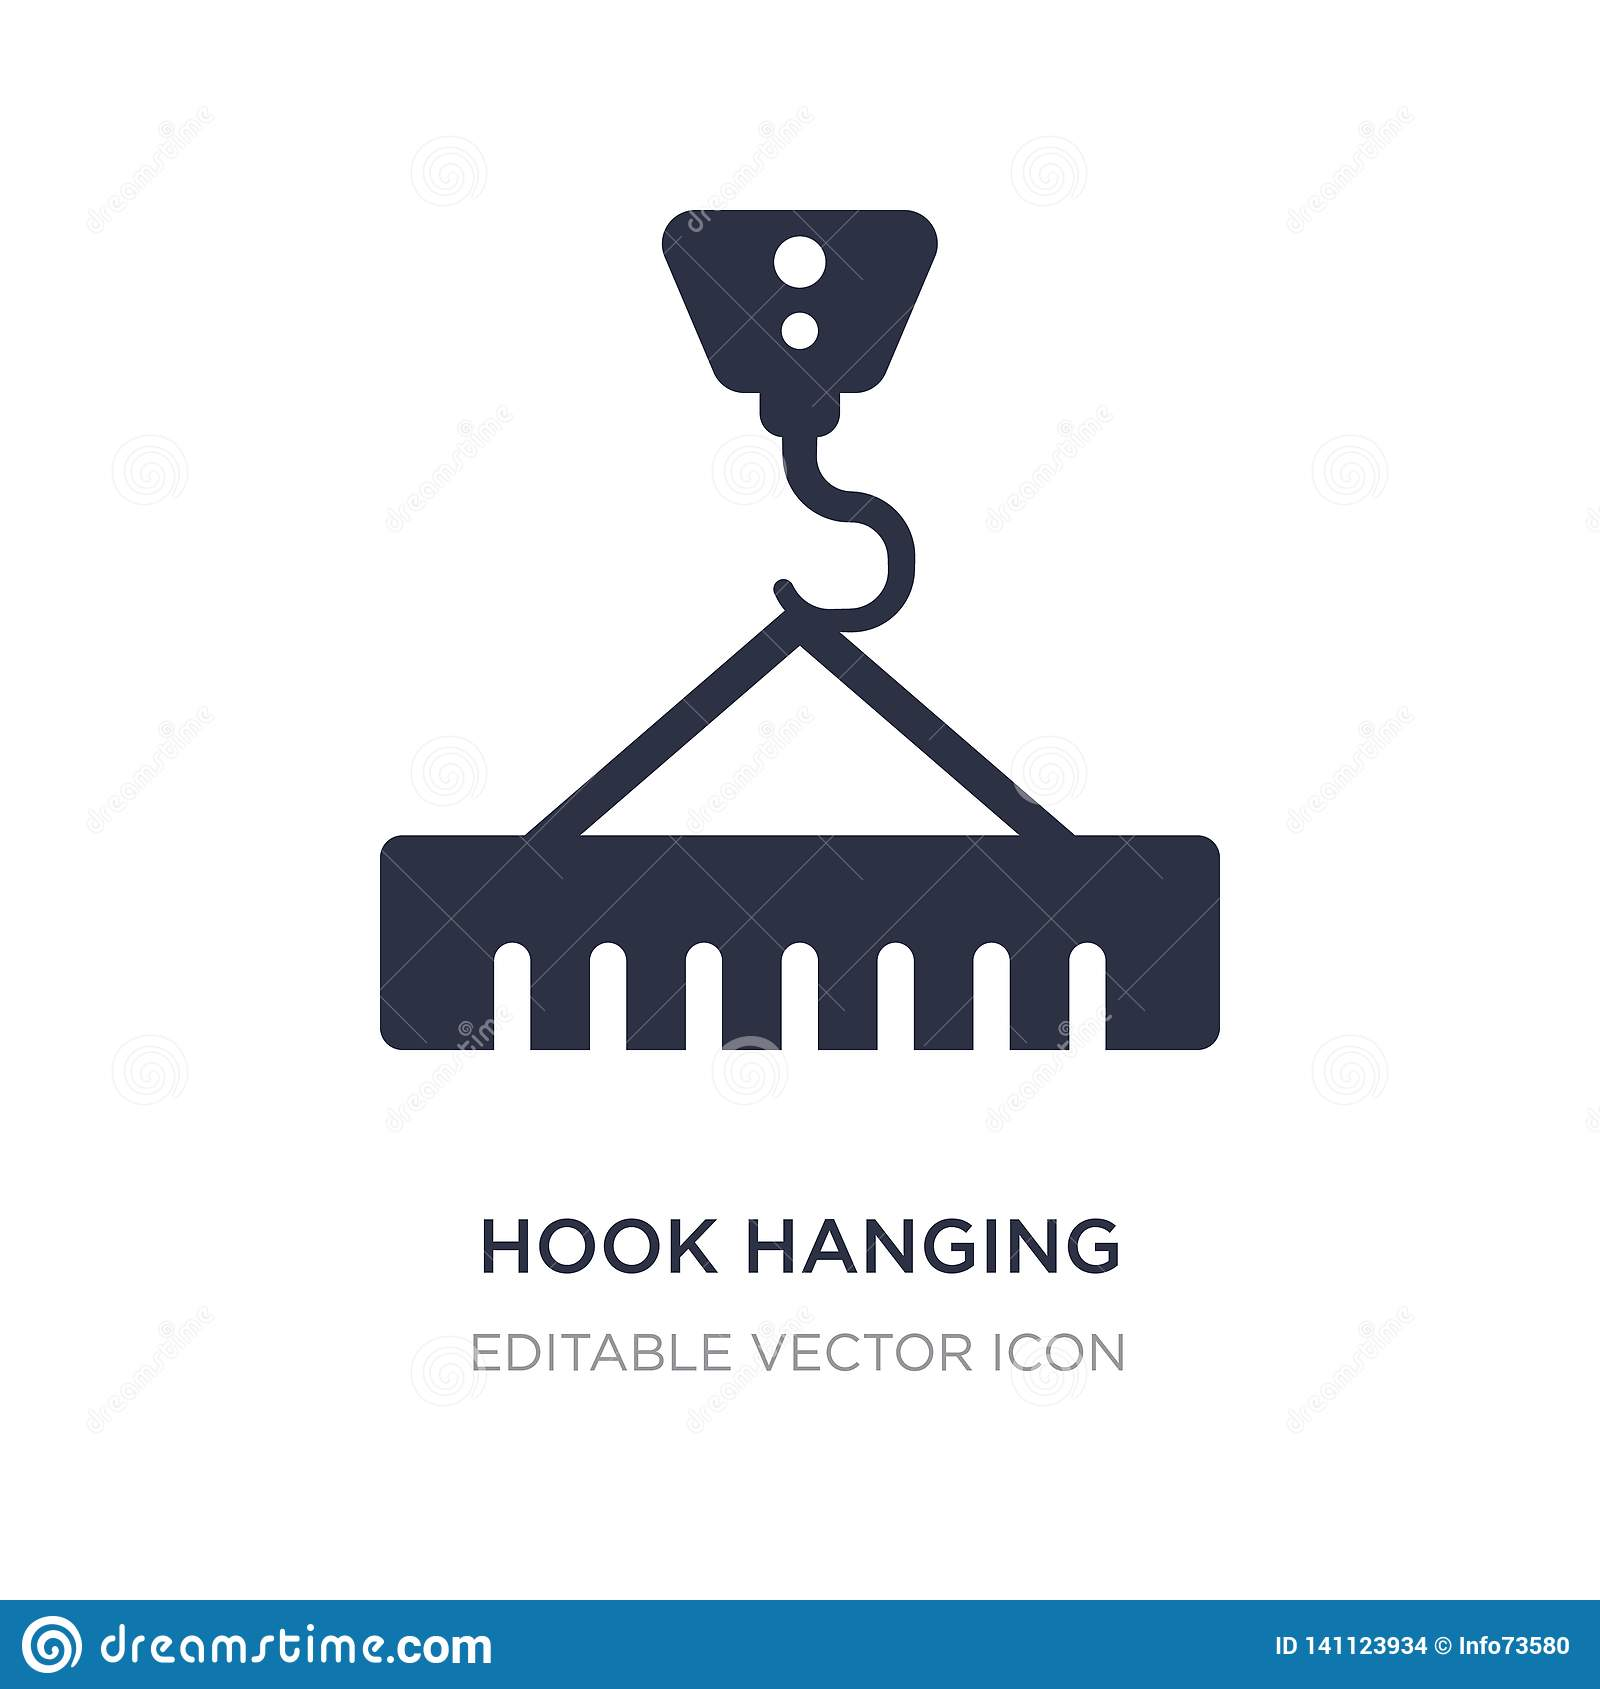 Hook hanging material icon on white background. Simple element illustration from Buildings concept